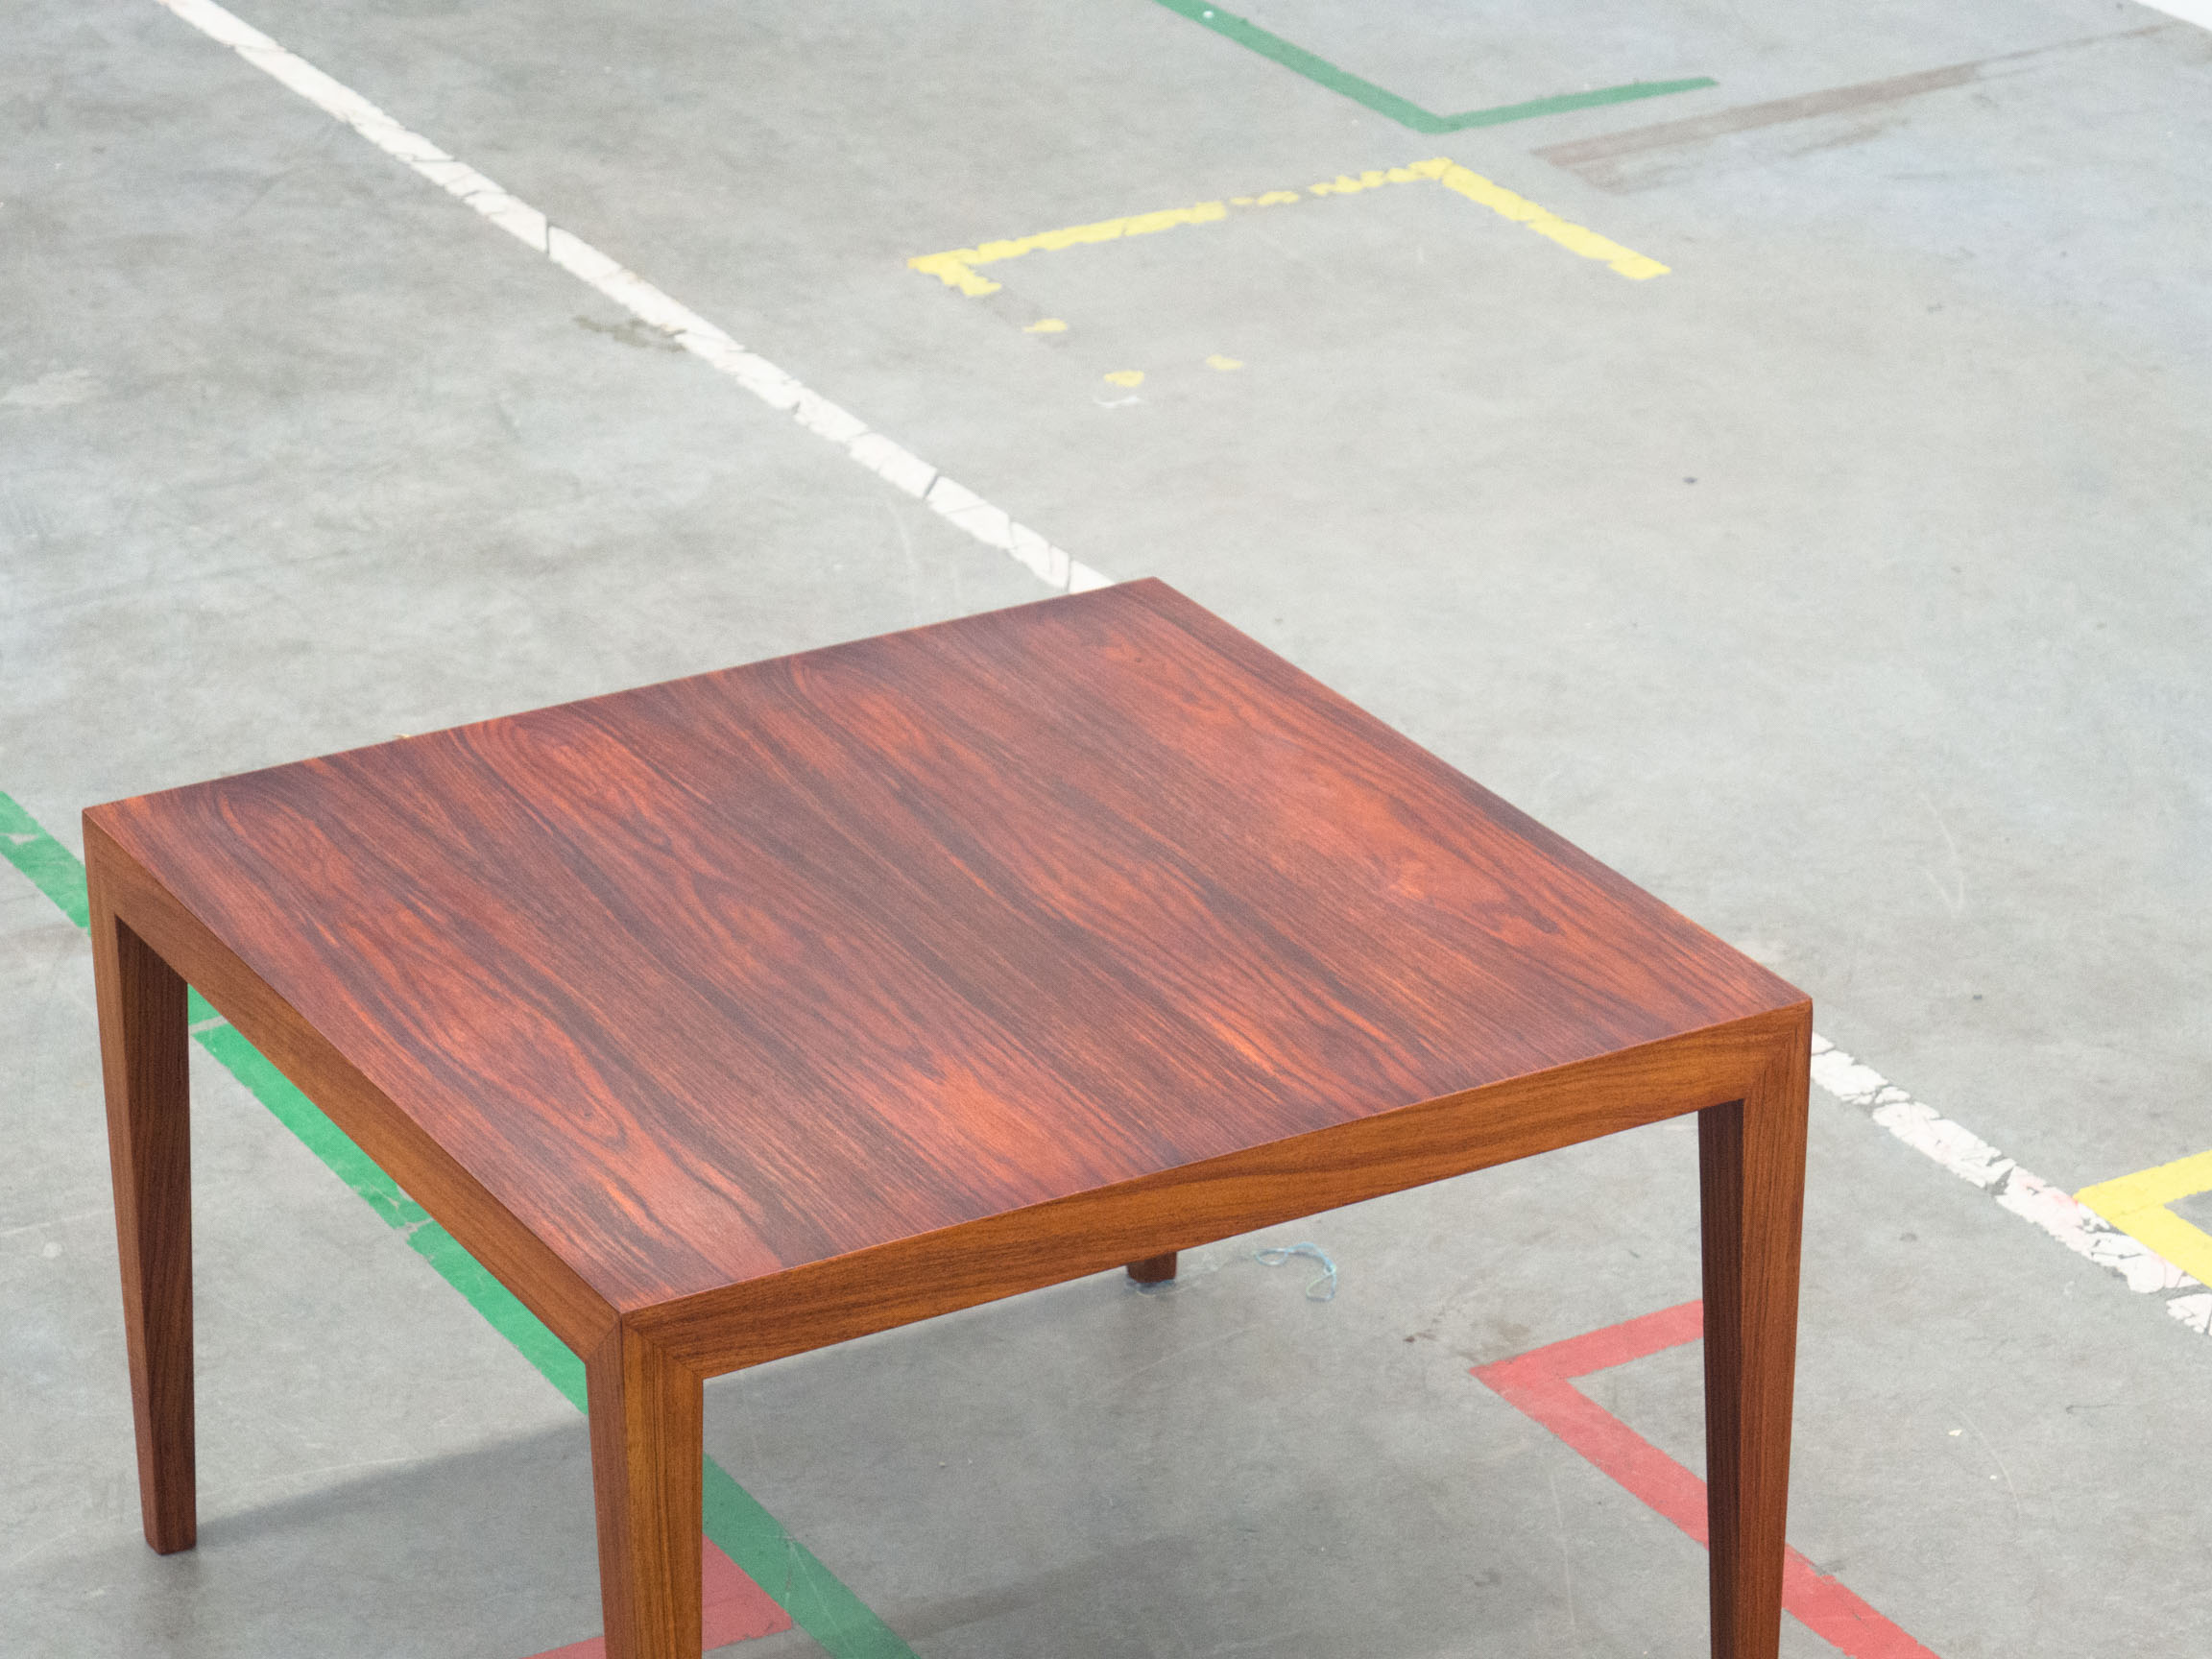 Marvelous Haslev Mobelsnedkeri Rosewood Coffee Table Severin Hansen Caraccident5 Cool Chair Designs And Ideas Caraccident5Info